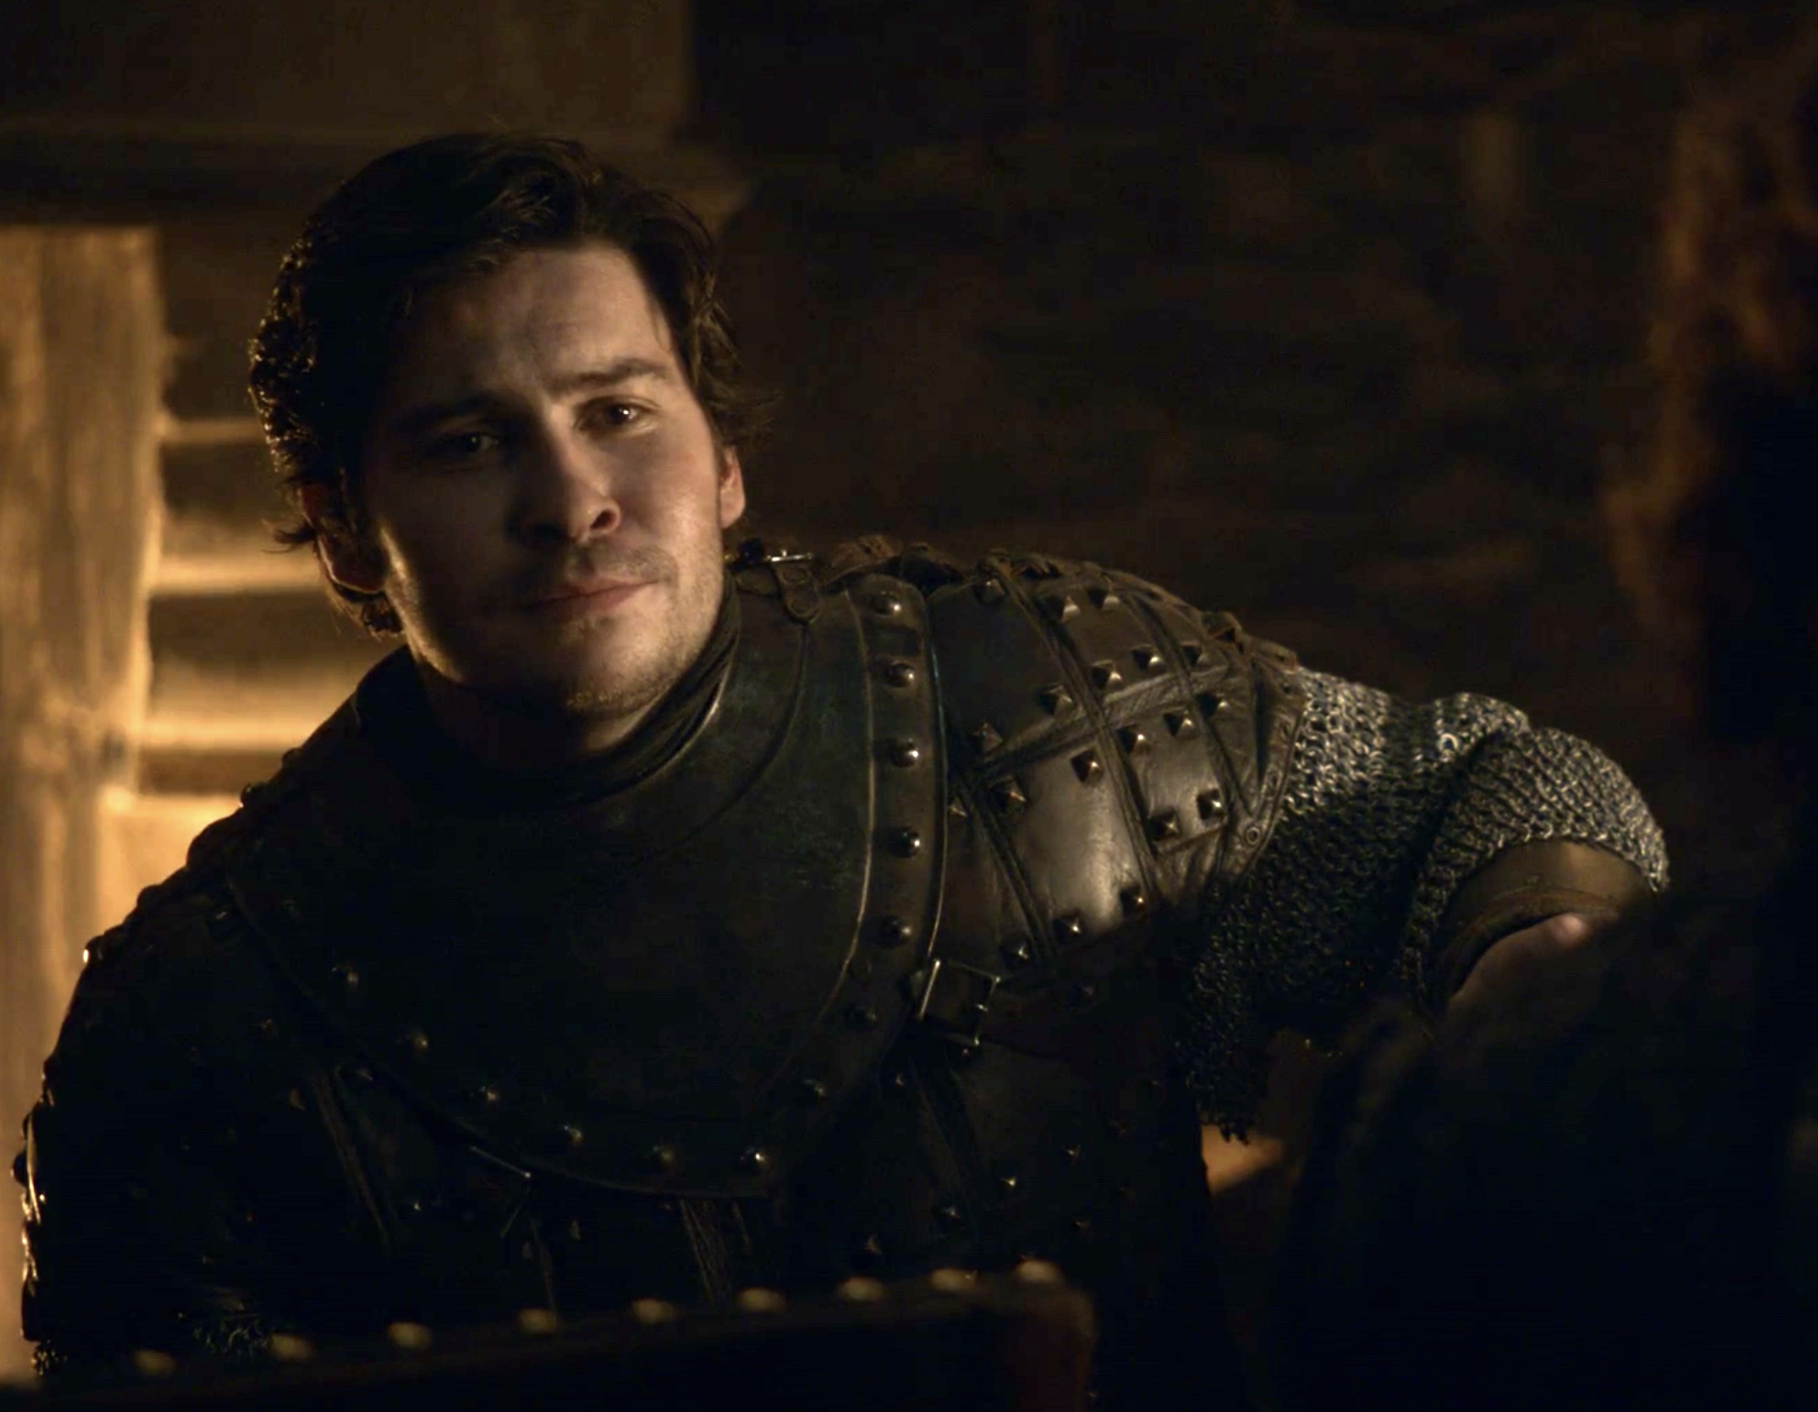 Podrick From 'Game of Thrones' Got Hot and Twitter Is Overwhelmed